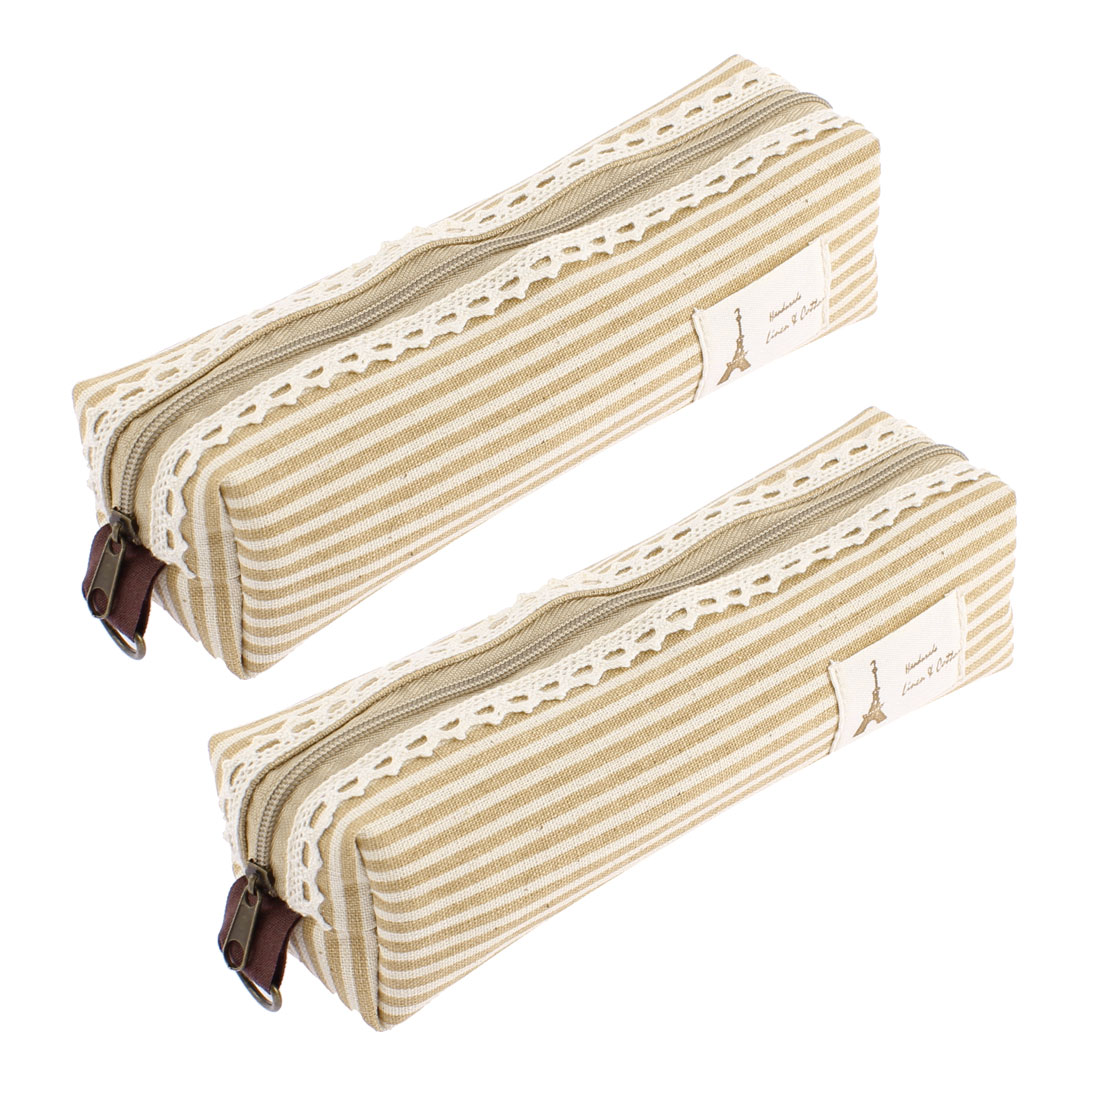 Canva Stripe Print Zippered Stationery Pen Pencil Bag Holder Organizer Camel Color 2 Pcs